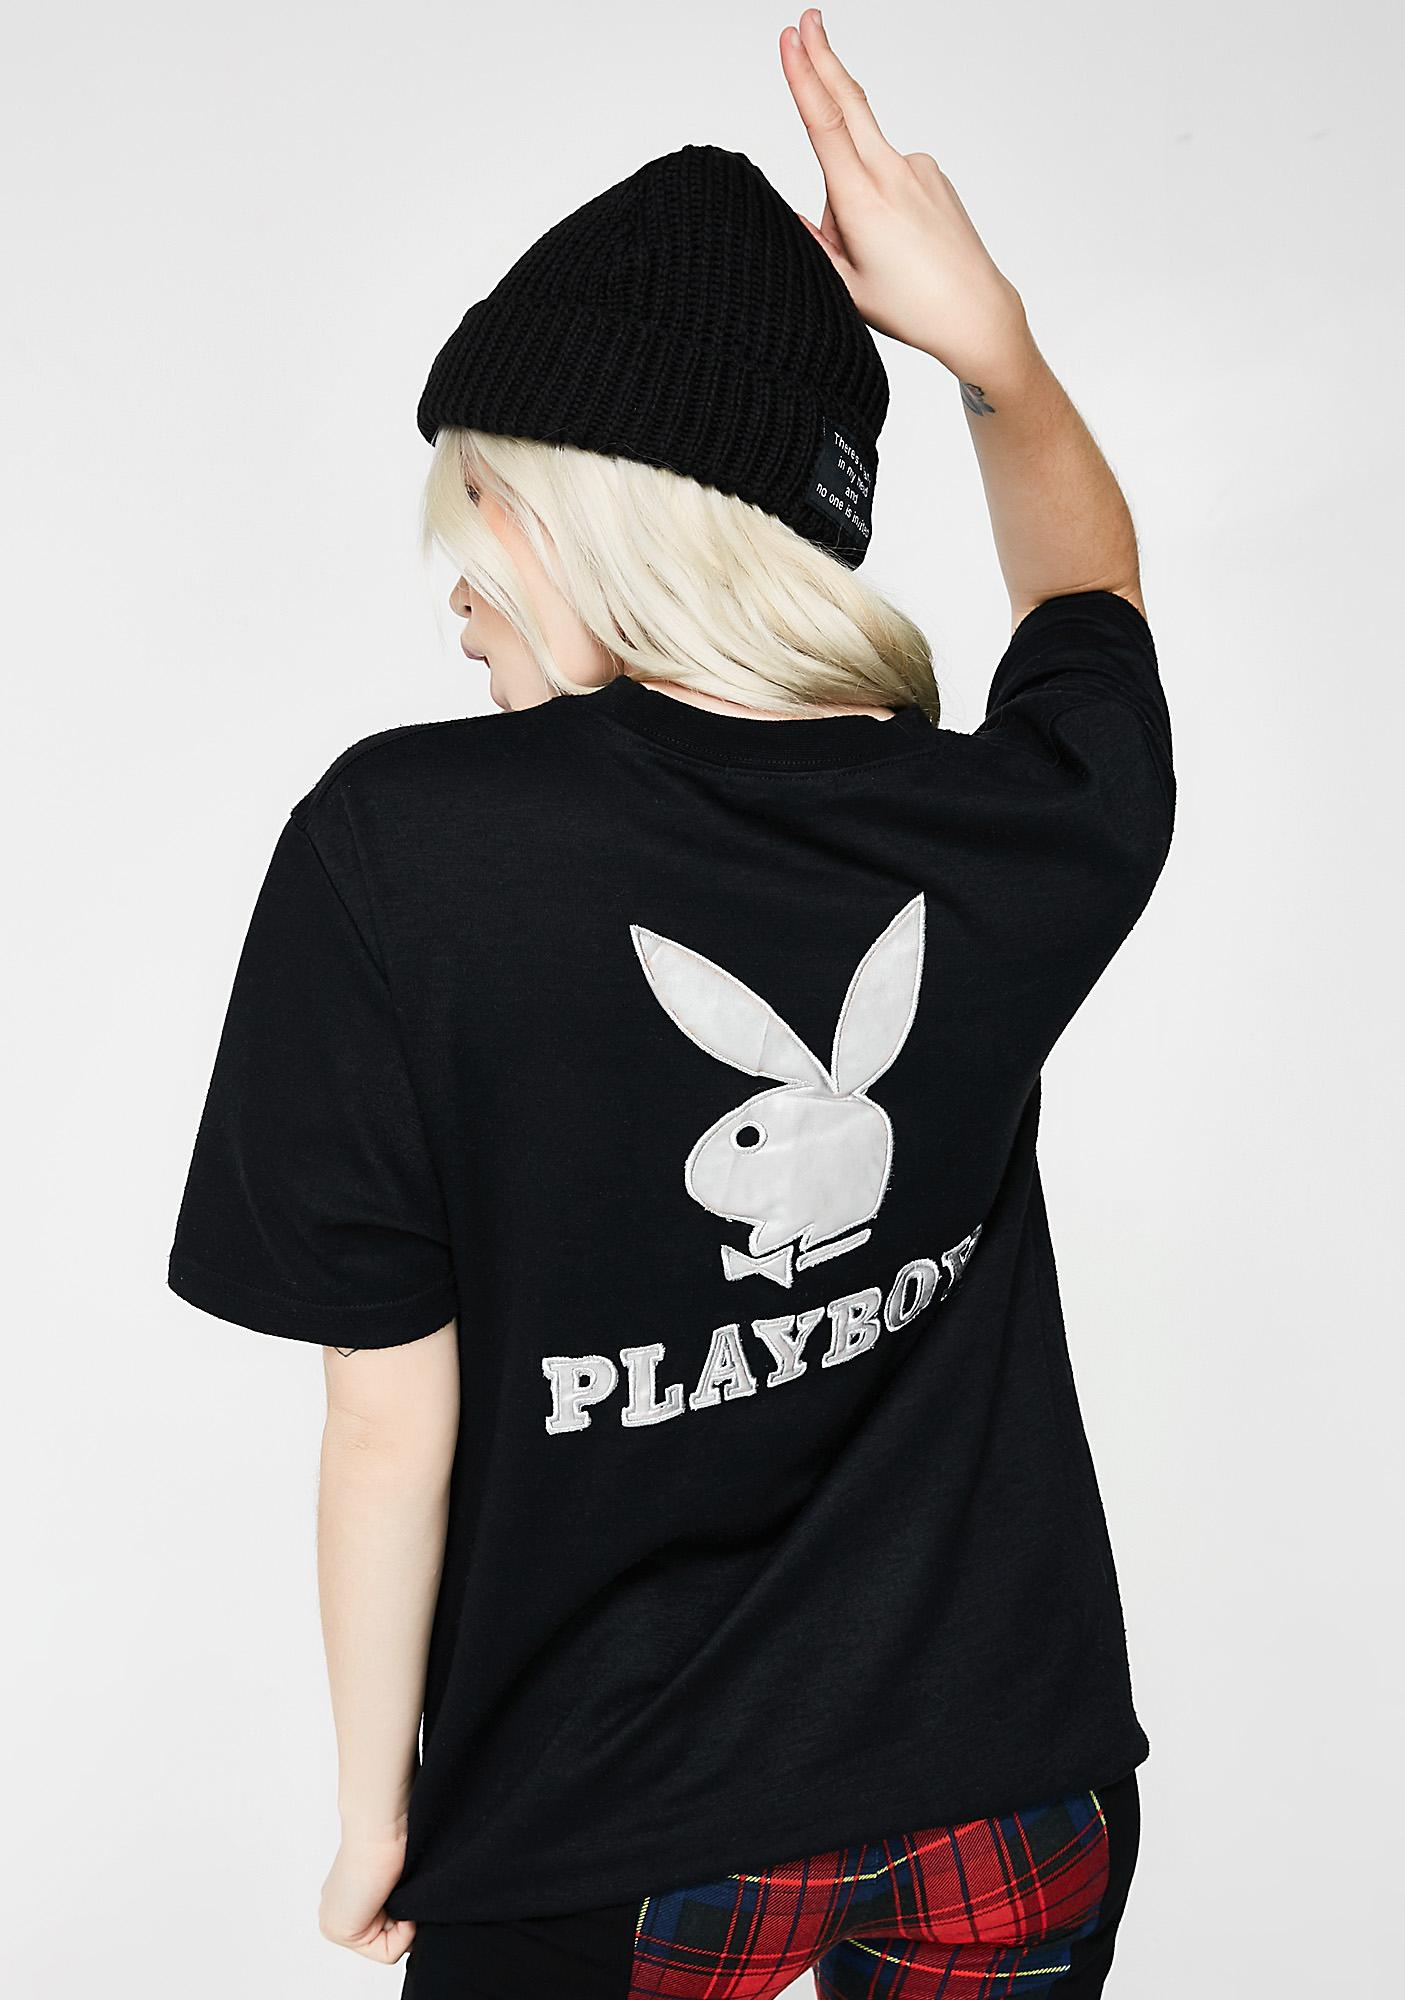 Vintage Playboy Embroidered Tee